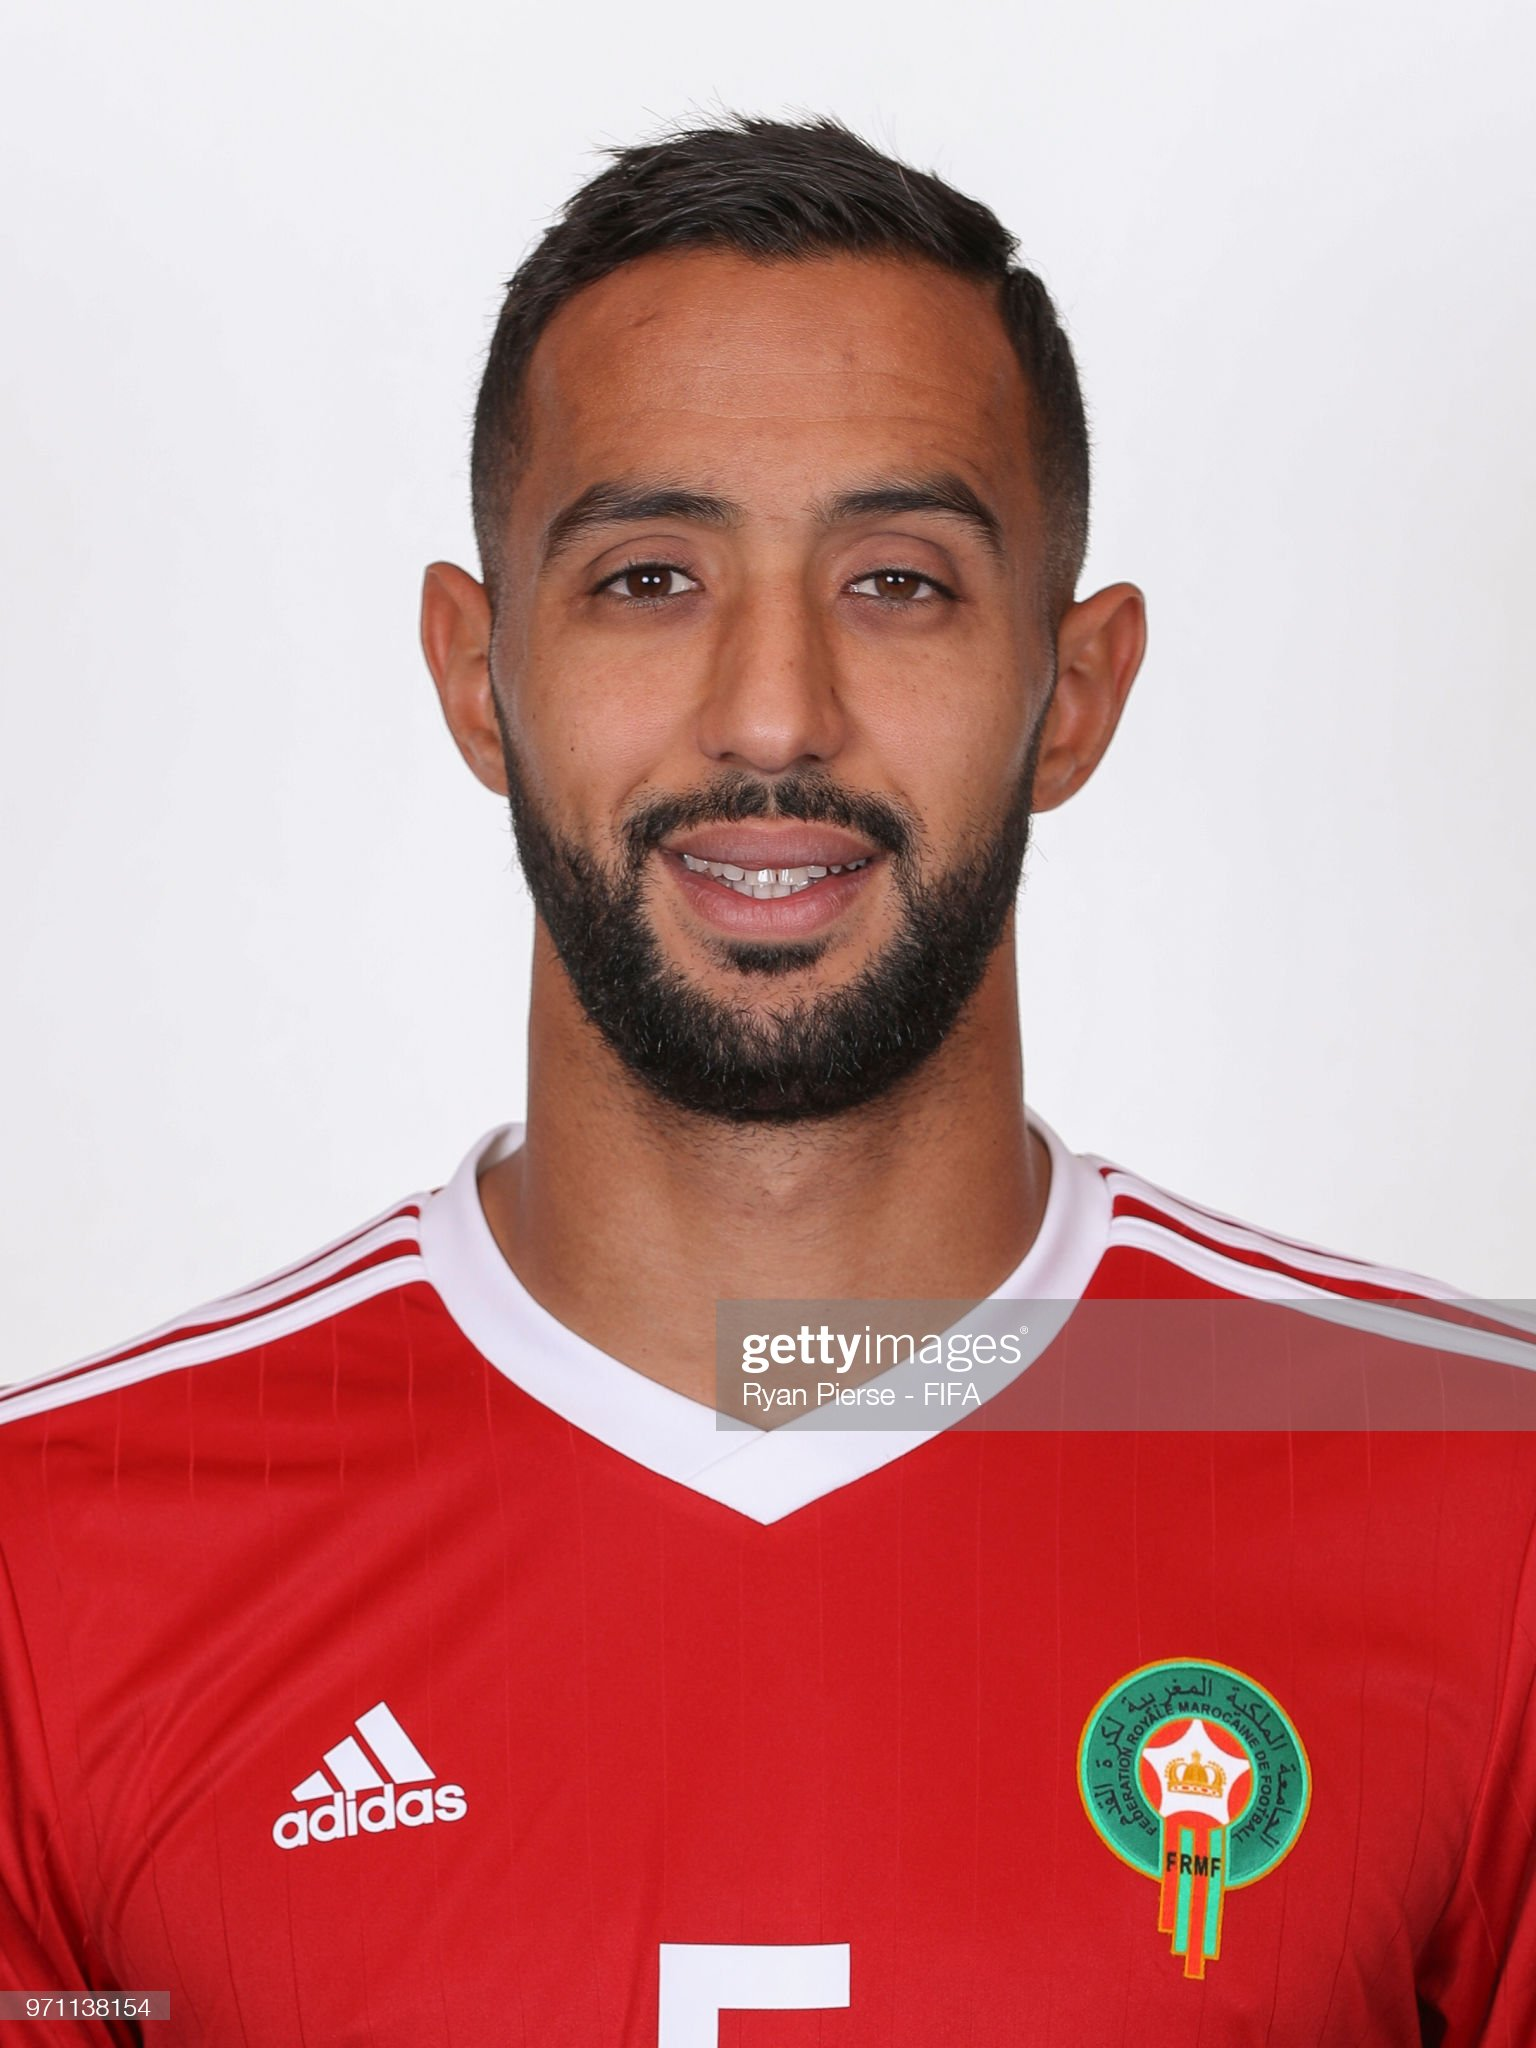 Norteafricanos Mehdi-benatia-of-morocco-poses-during-the-official-fifa-world-cup-picture-id971138154?s=2048x2048